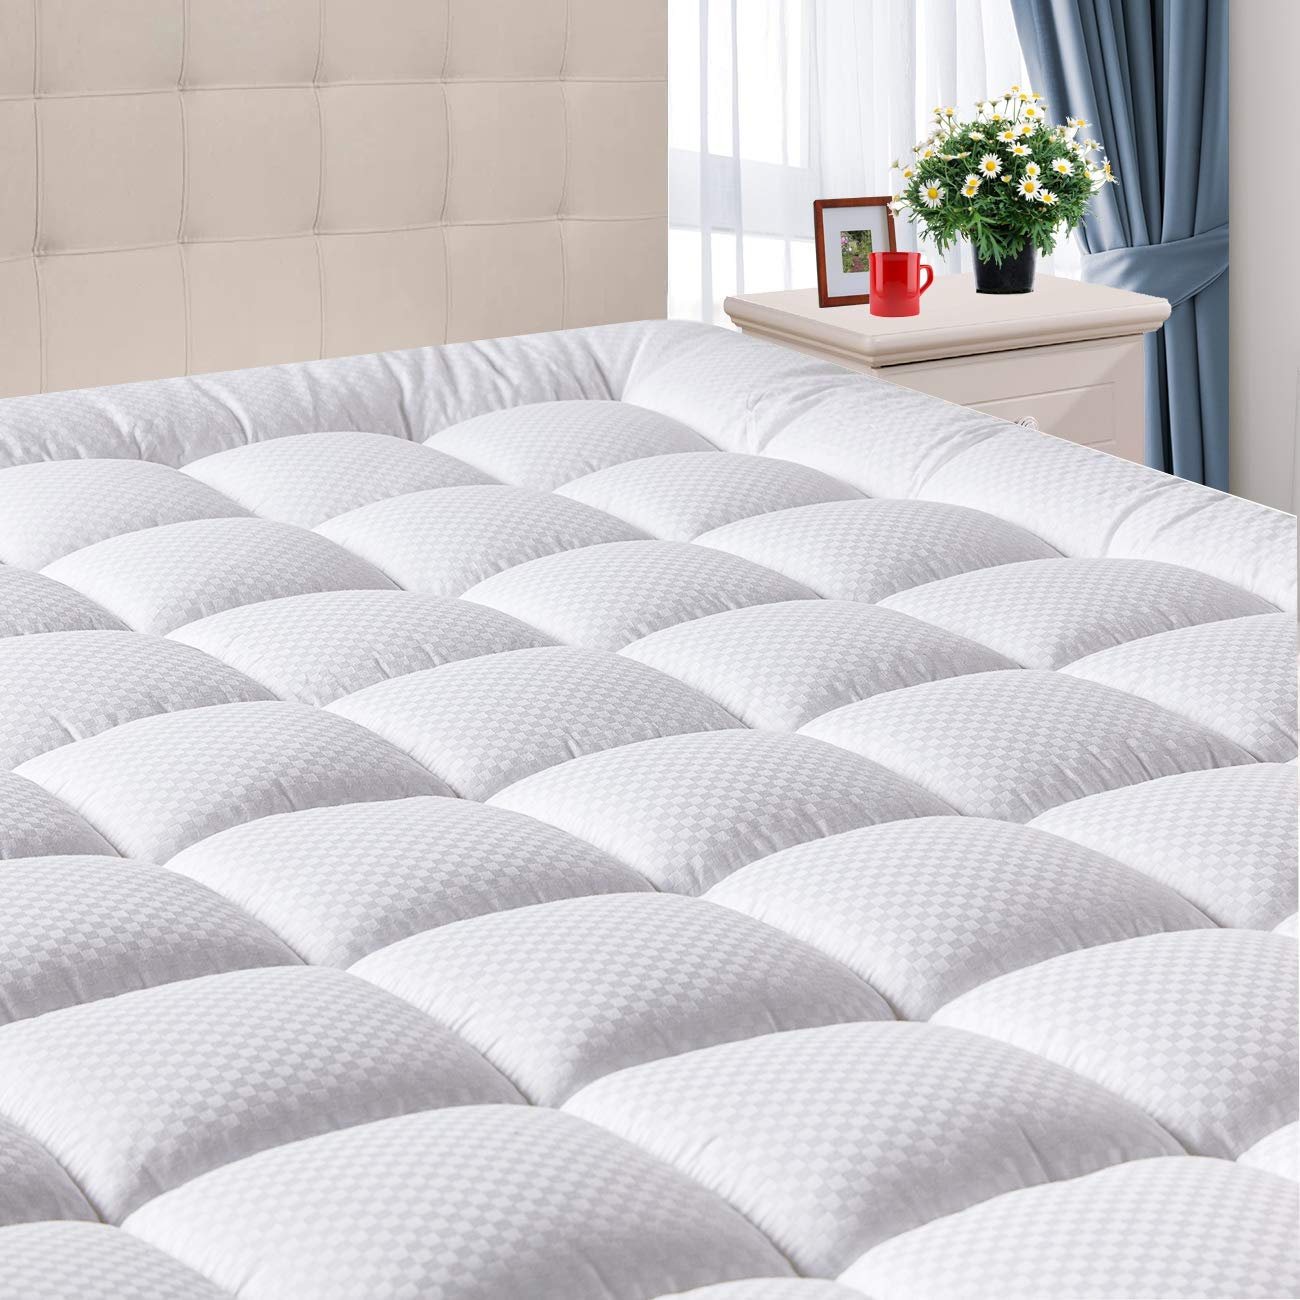 "Domicare Full Mattress Pad Cover with Deep Pocket (8""-21"") - Cooling Pillowtop Cotton Quilted Mattress Pad - Down Alternative Hypoallergenic Fitted Mattress Topper"